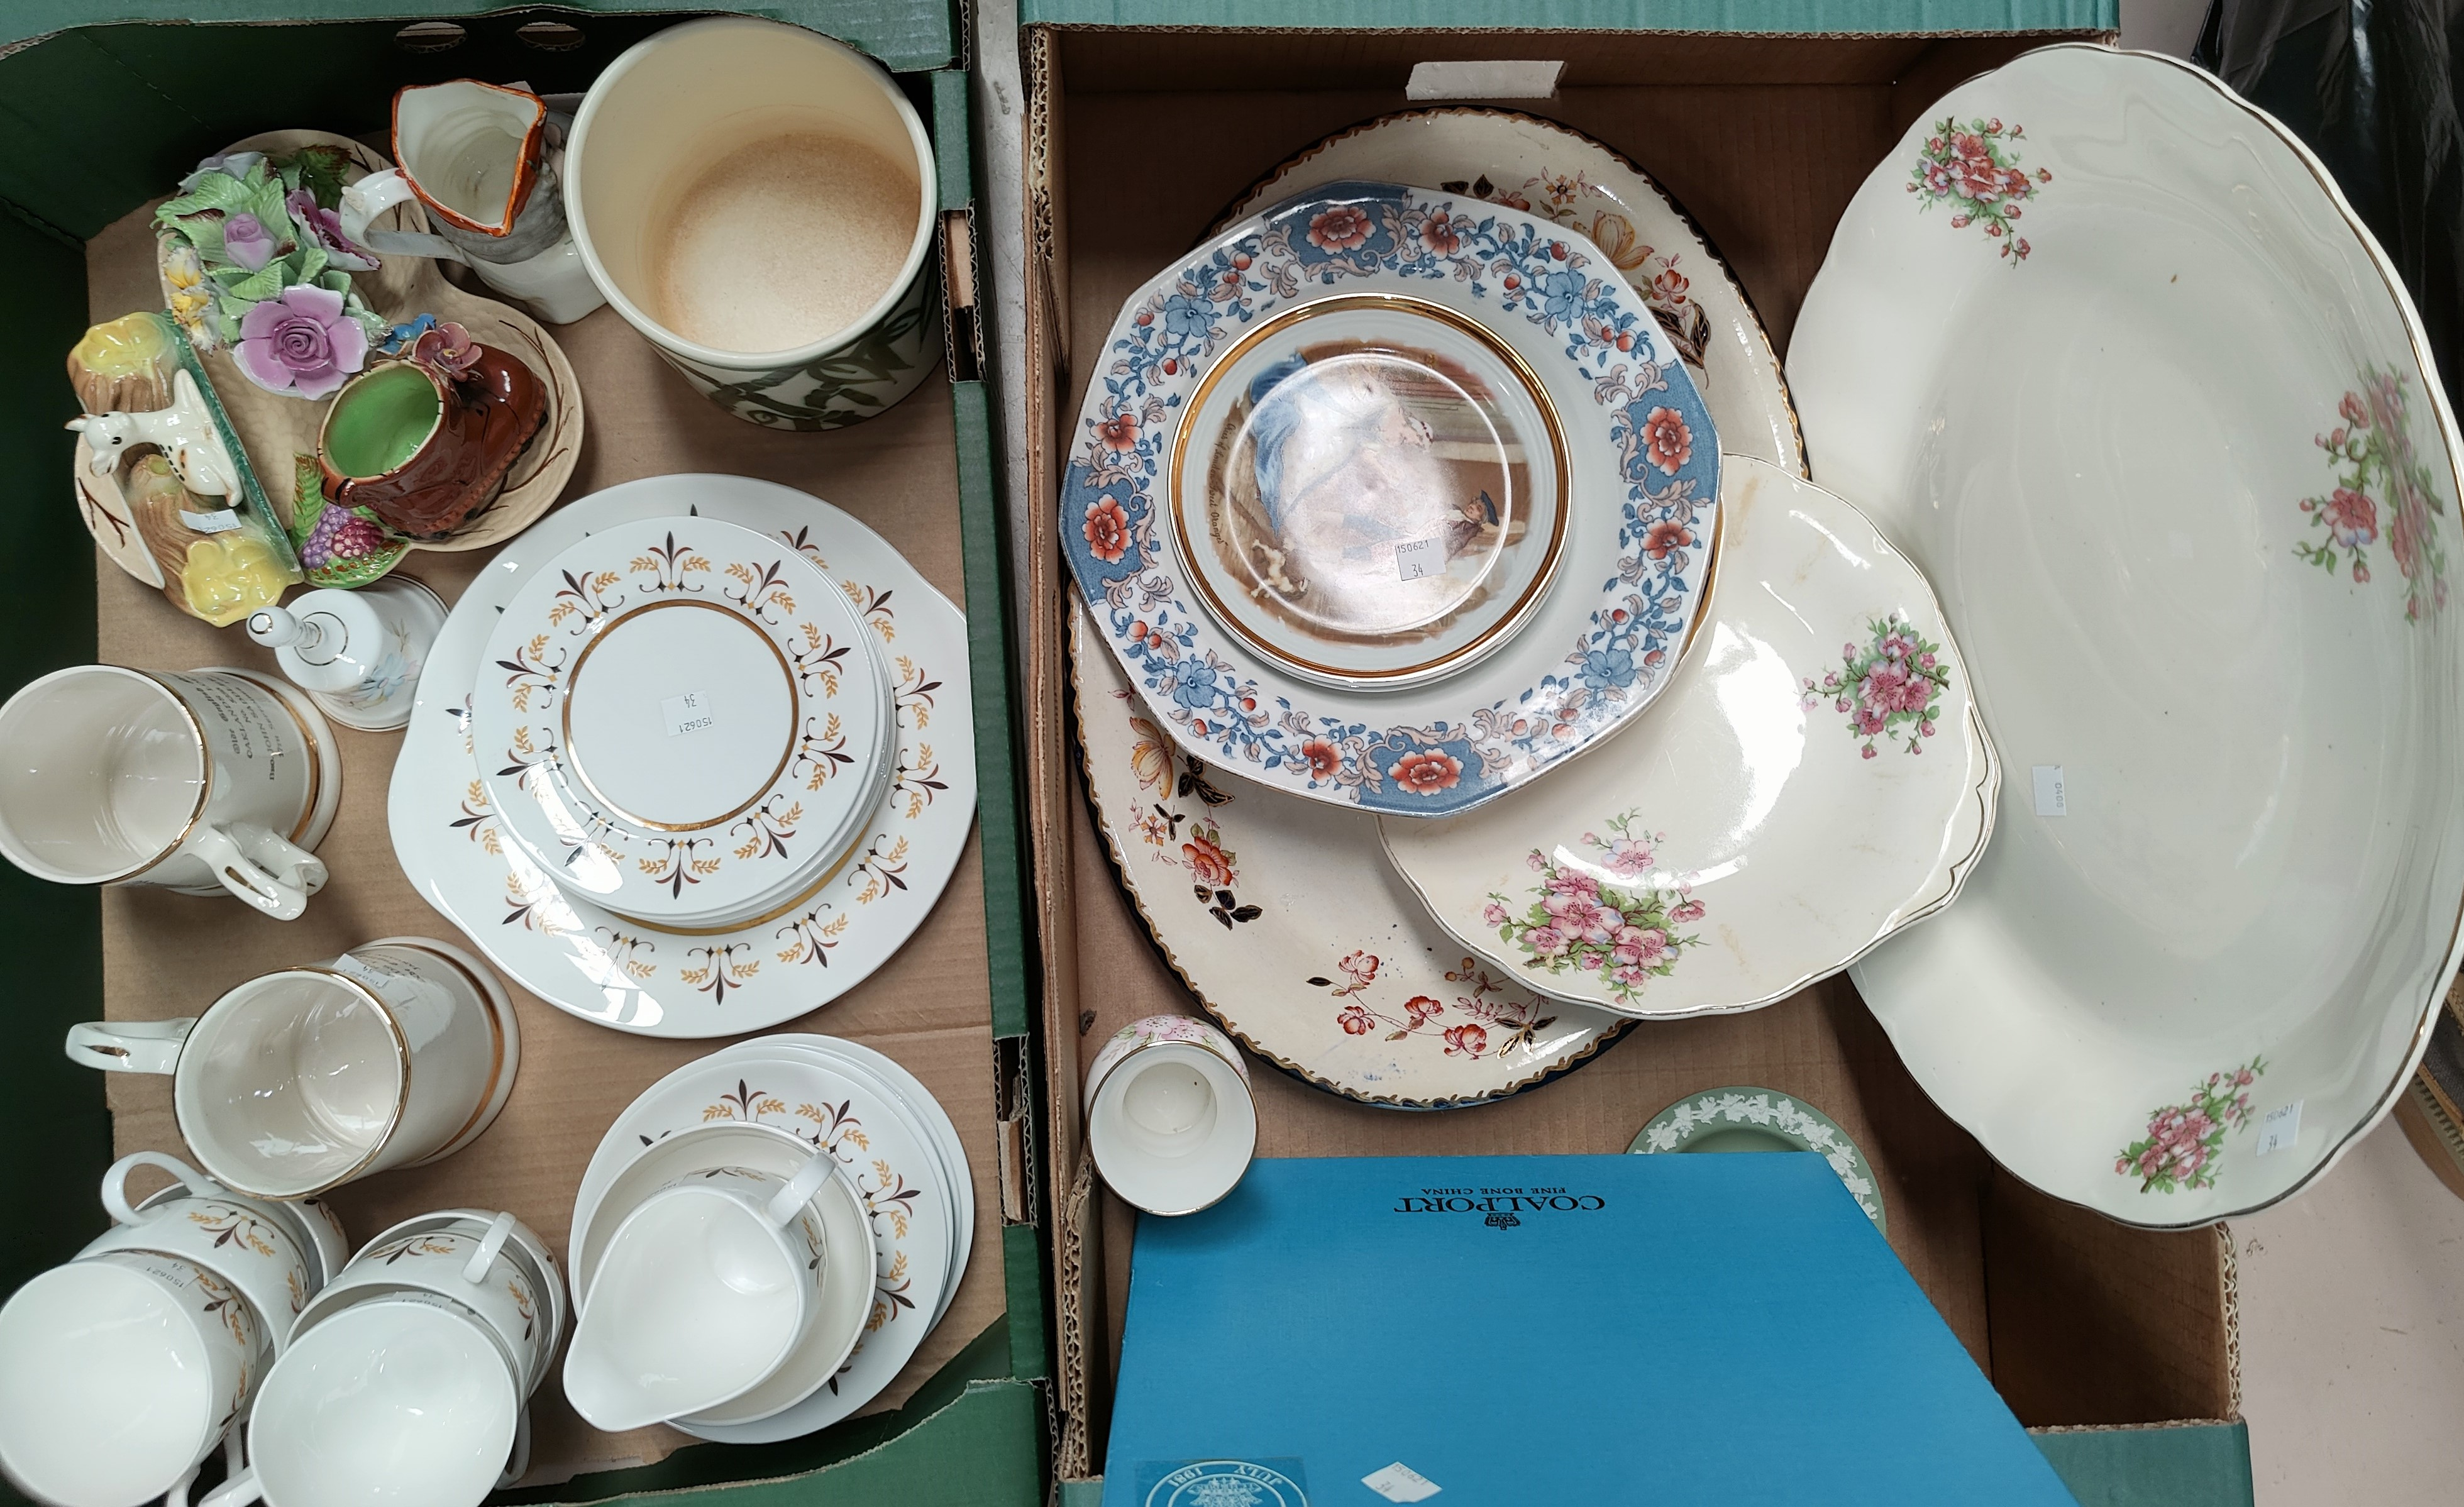 A selection of decorative china